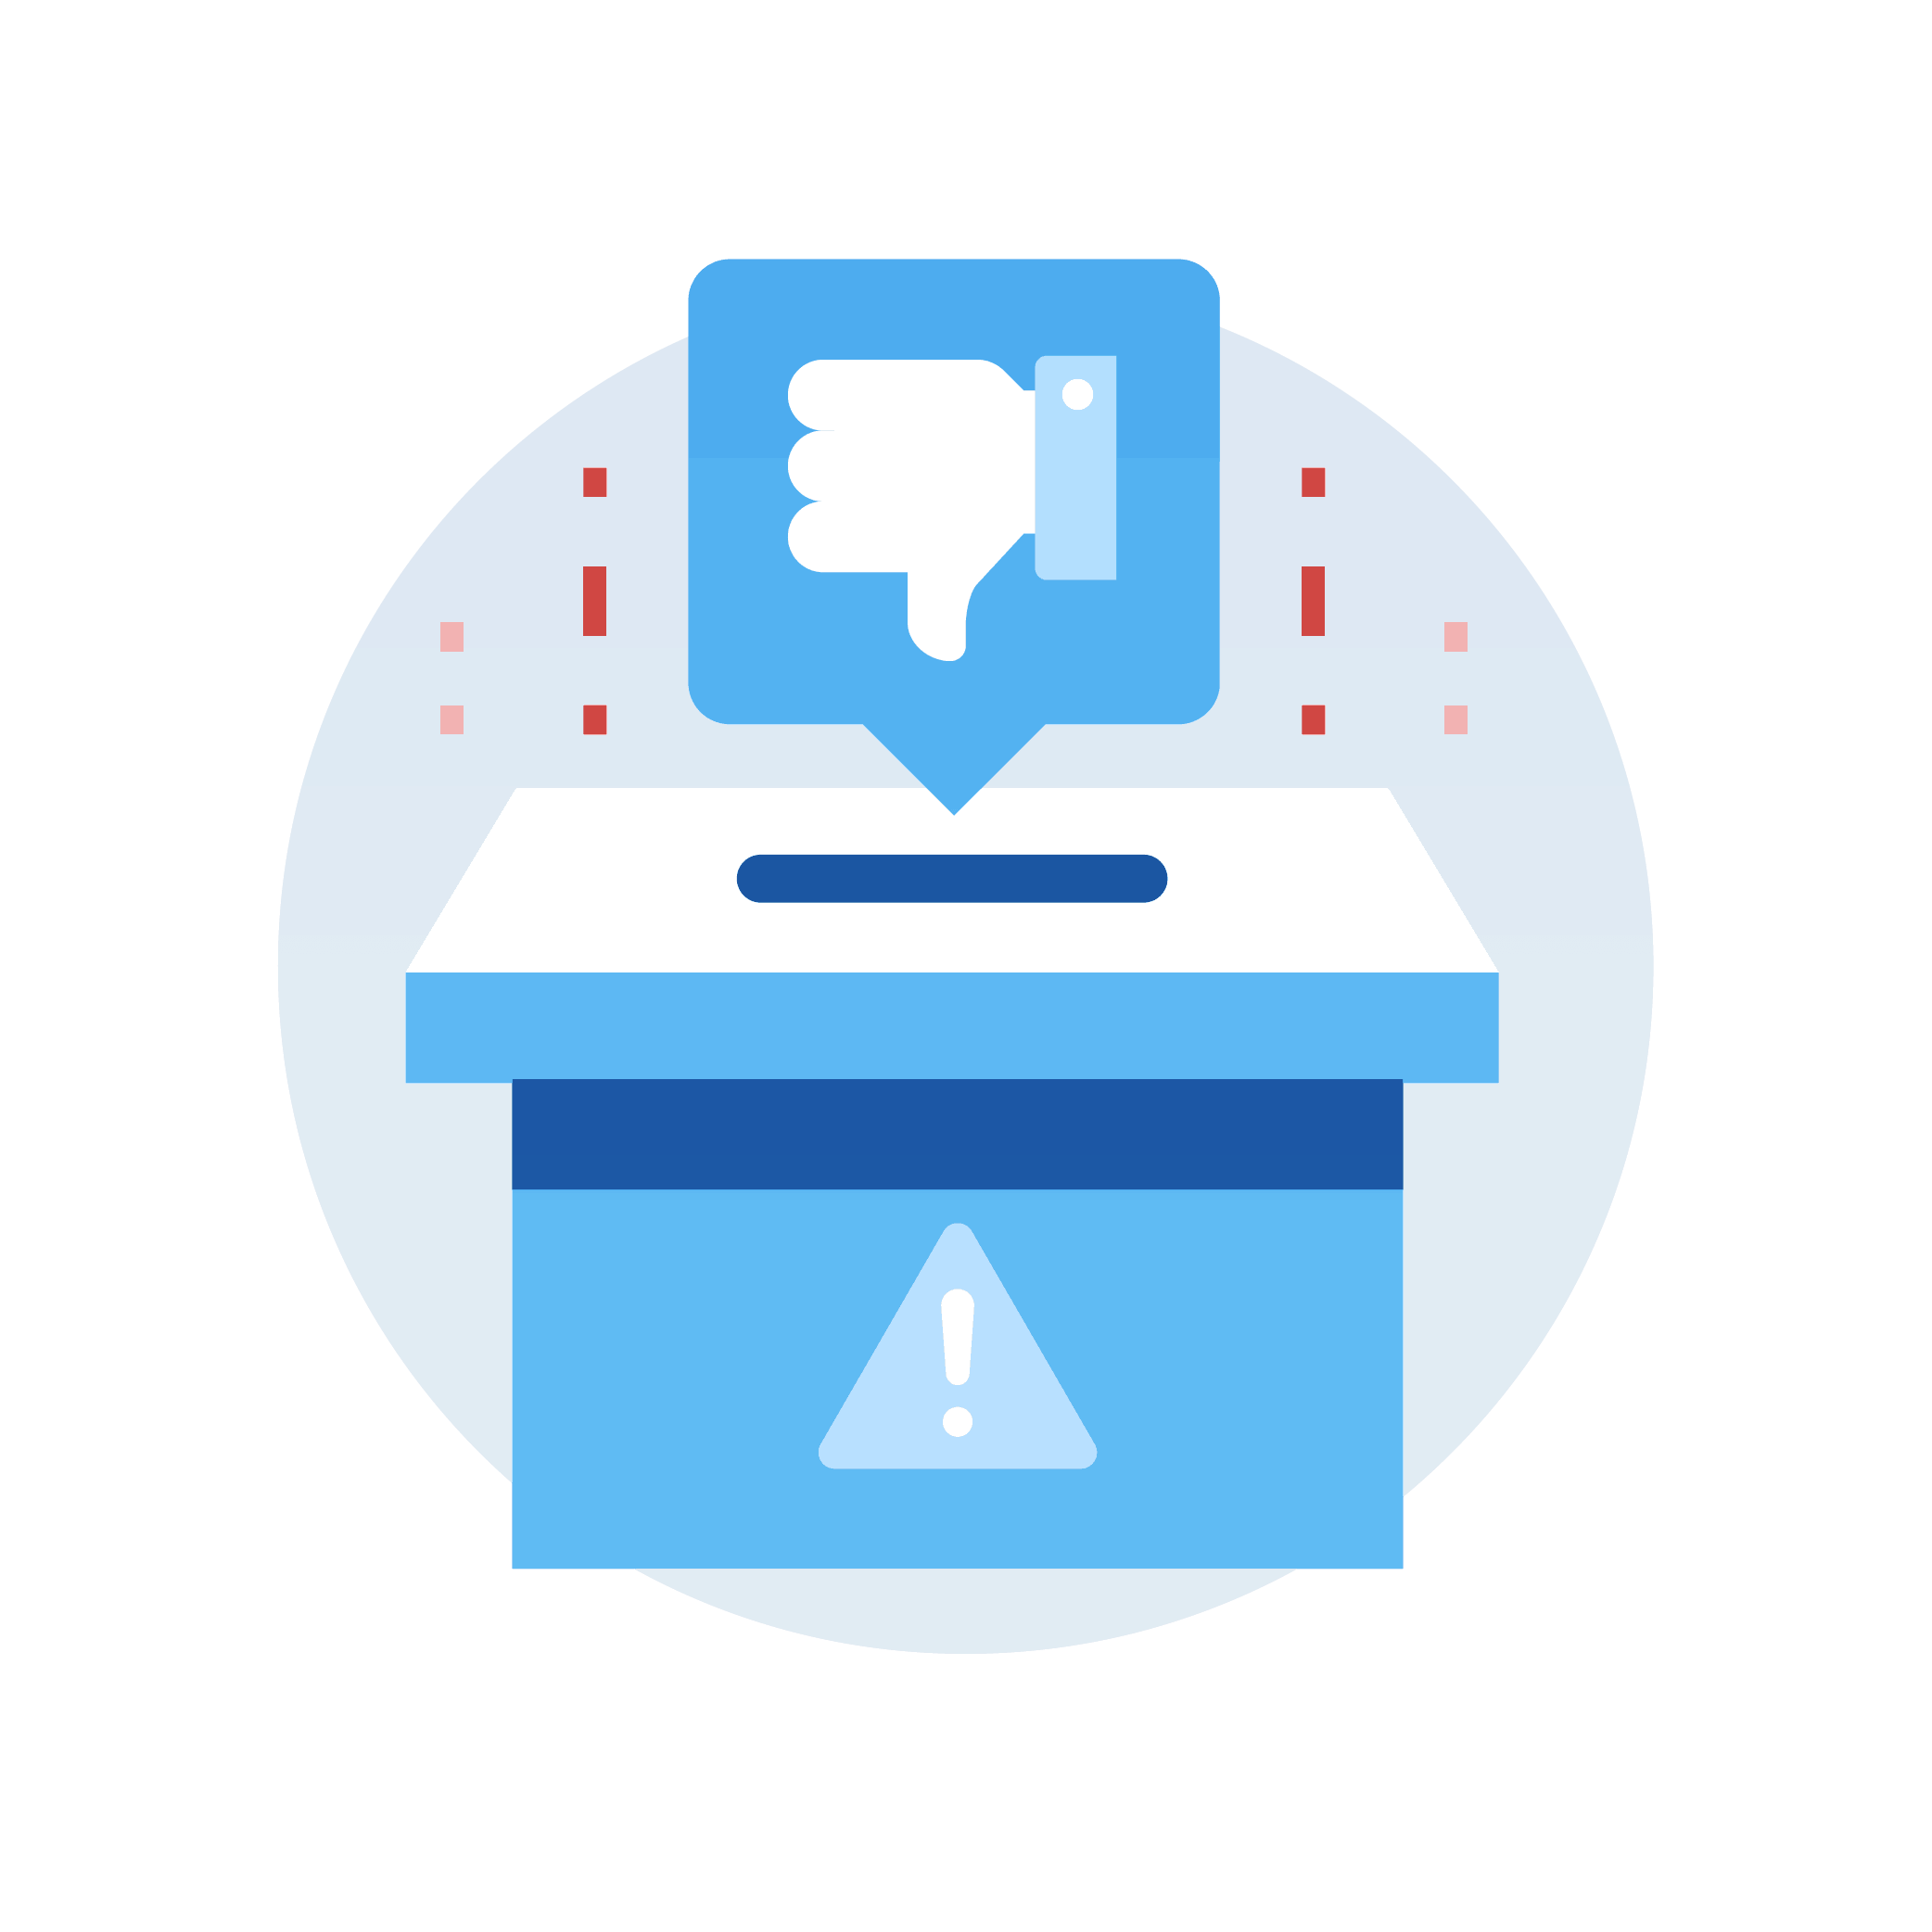 govqa complaints management software product icon